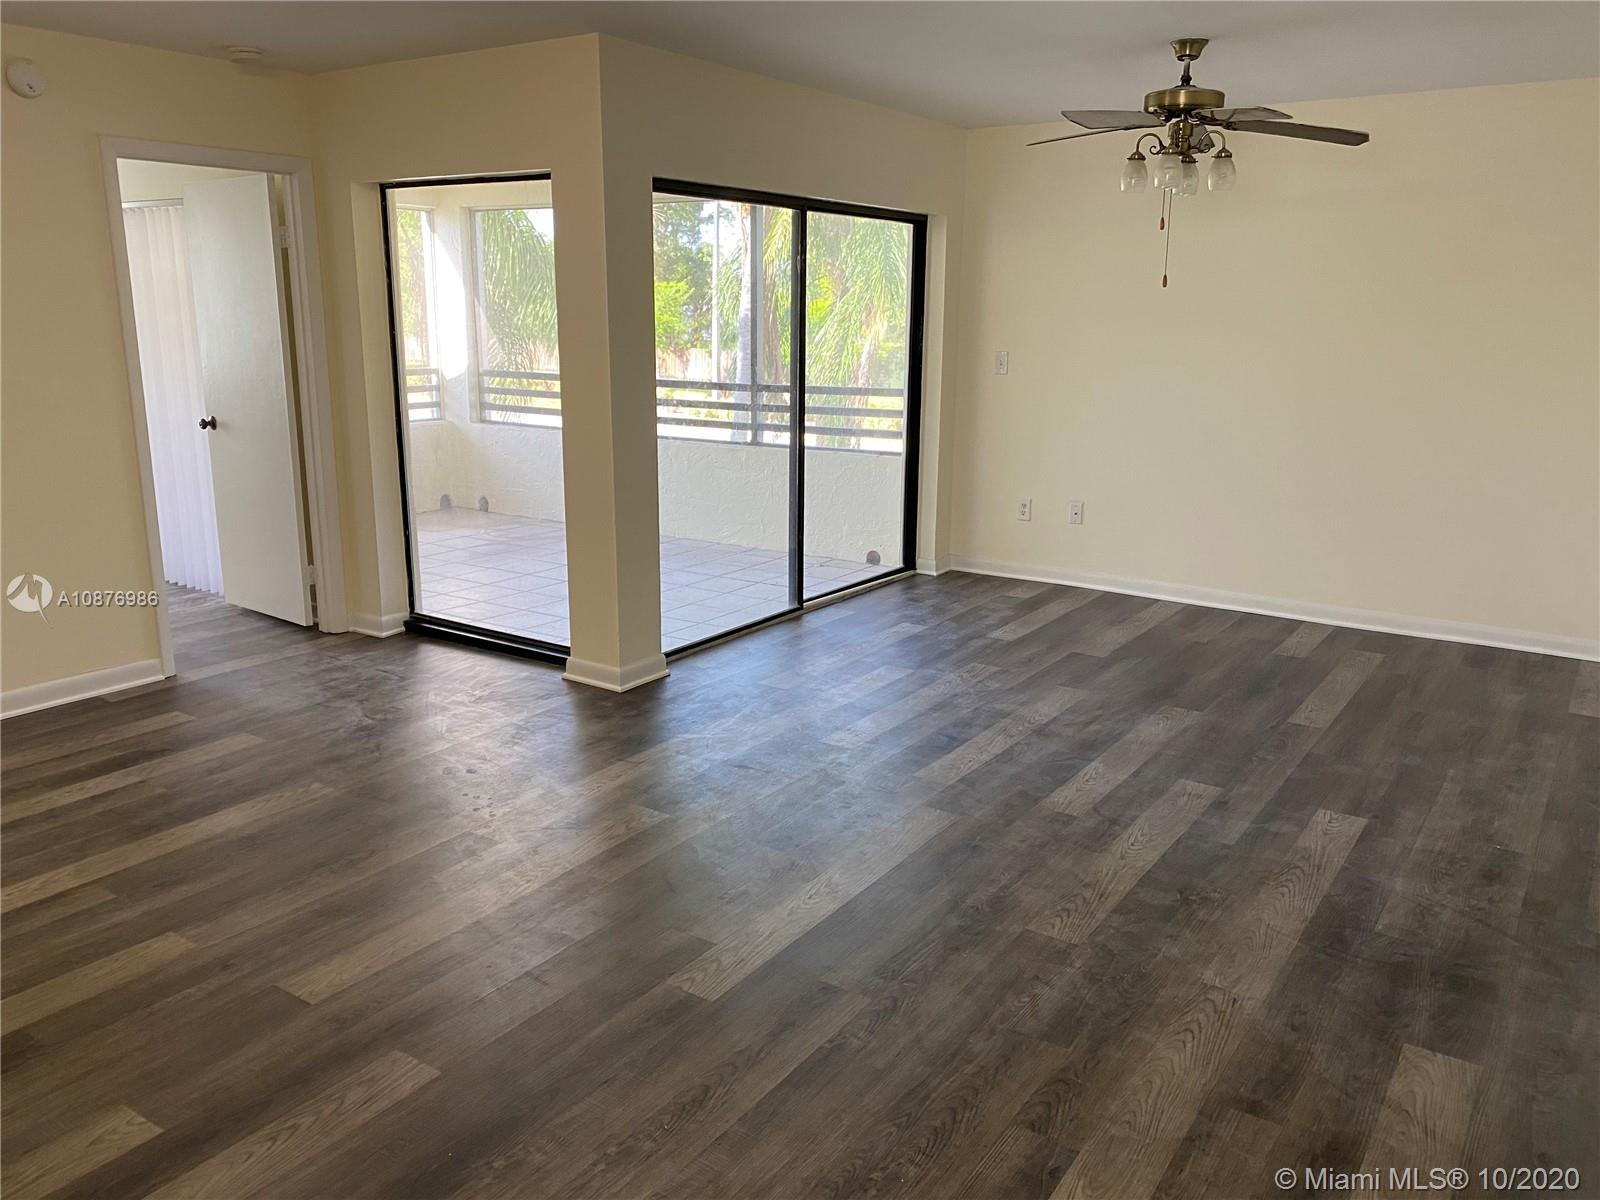 BEAUTIFULLY UPGRADED CORNER UNIT WITH PARTIAL WATER VIEWS! COMPLETELY REMODELED HOME FEATURES 3 BEDROOMS AND 2 BATHS HIGHLIGHTED BY OVER SIZED COVERED TERRACE, BRAND NEW LAMINATE FLOORING THROUGHOUT, UPGRADED BATHROOMS AND KITCHEN. MINUTES FROM PEMBROKE LAKES MALL, SHOPPING PLAZAS AND GREAT PARKS.